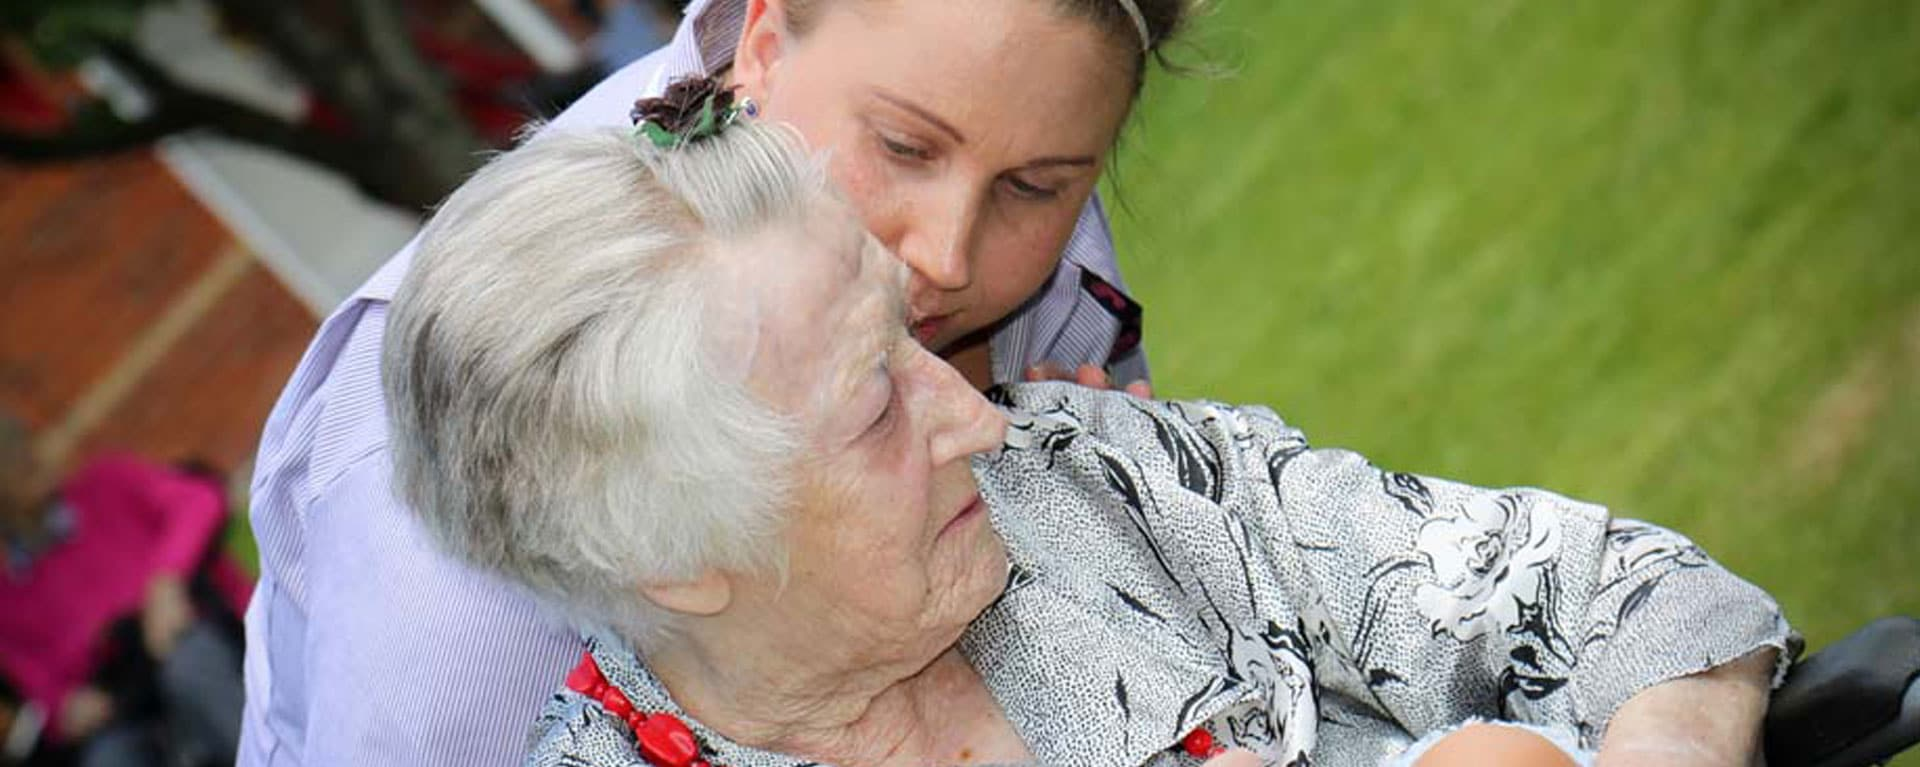 Carer checking if a resident is okay